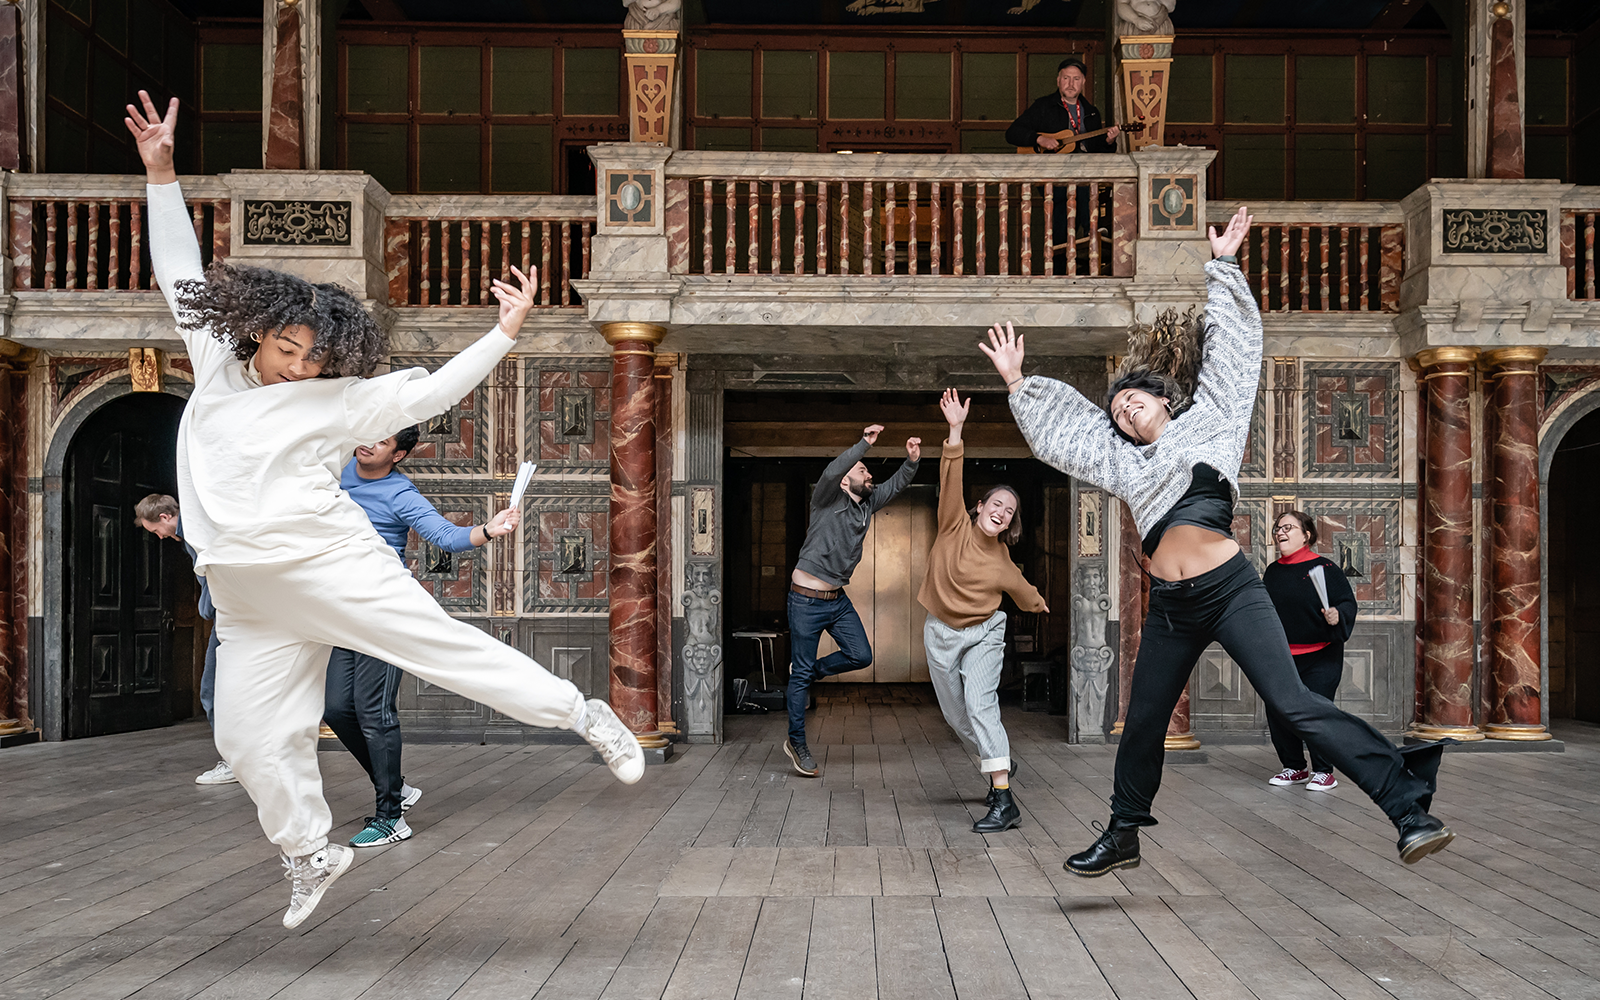 On an outdoor, wooden stage, a group of actors dance and jump in the air